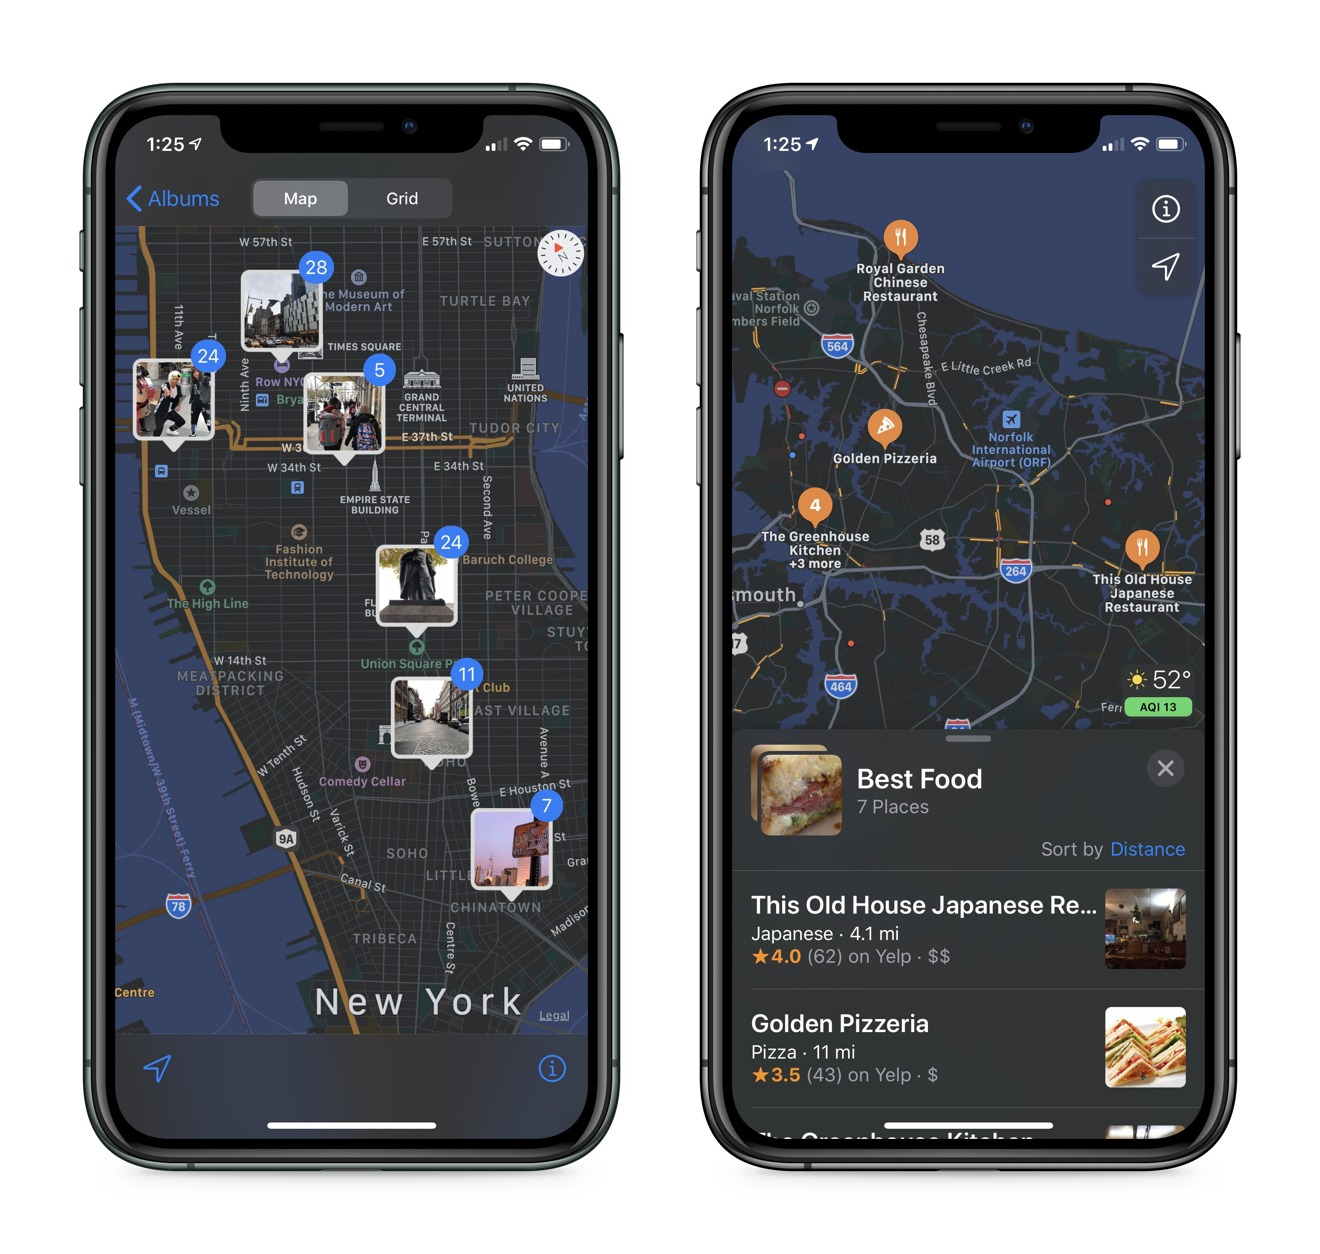 Apple Photos using Apple Maps to express location metadata (left) and Collections showing favorite places to eat (right)